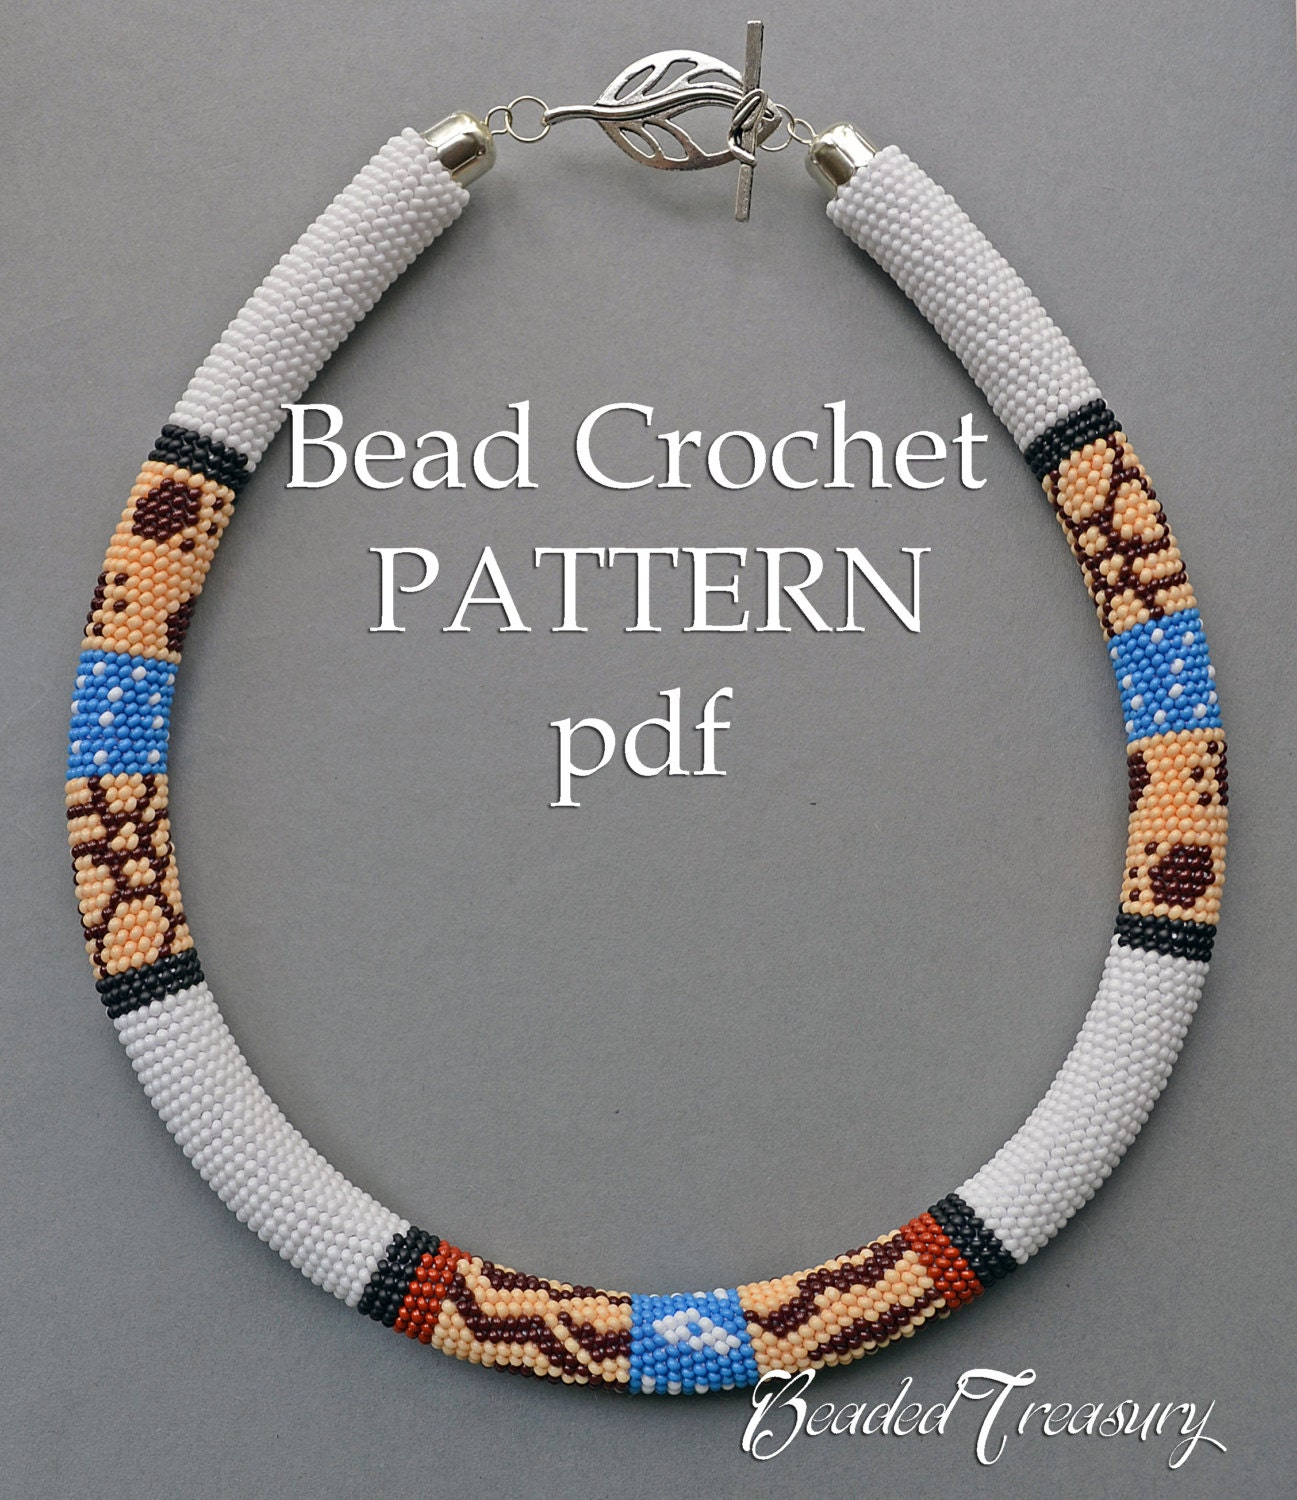 Safari bead crochet pattern seed bead necklace pattern beaded this is a digital file bankloansurffo Image collections